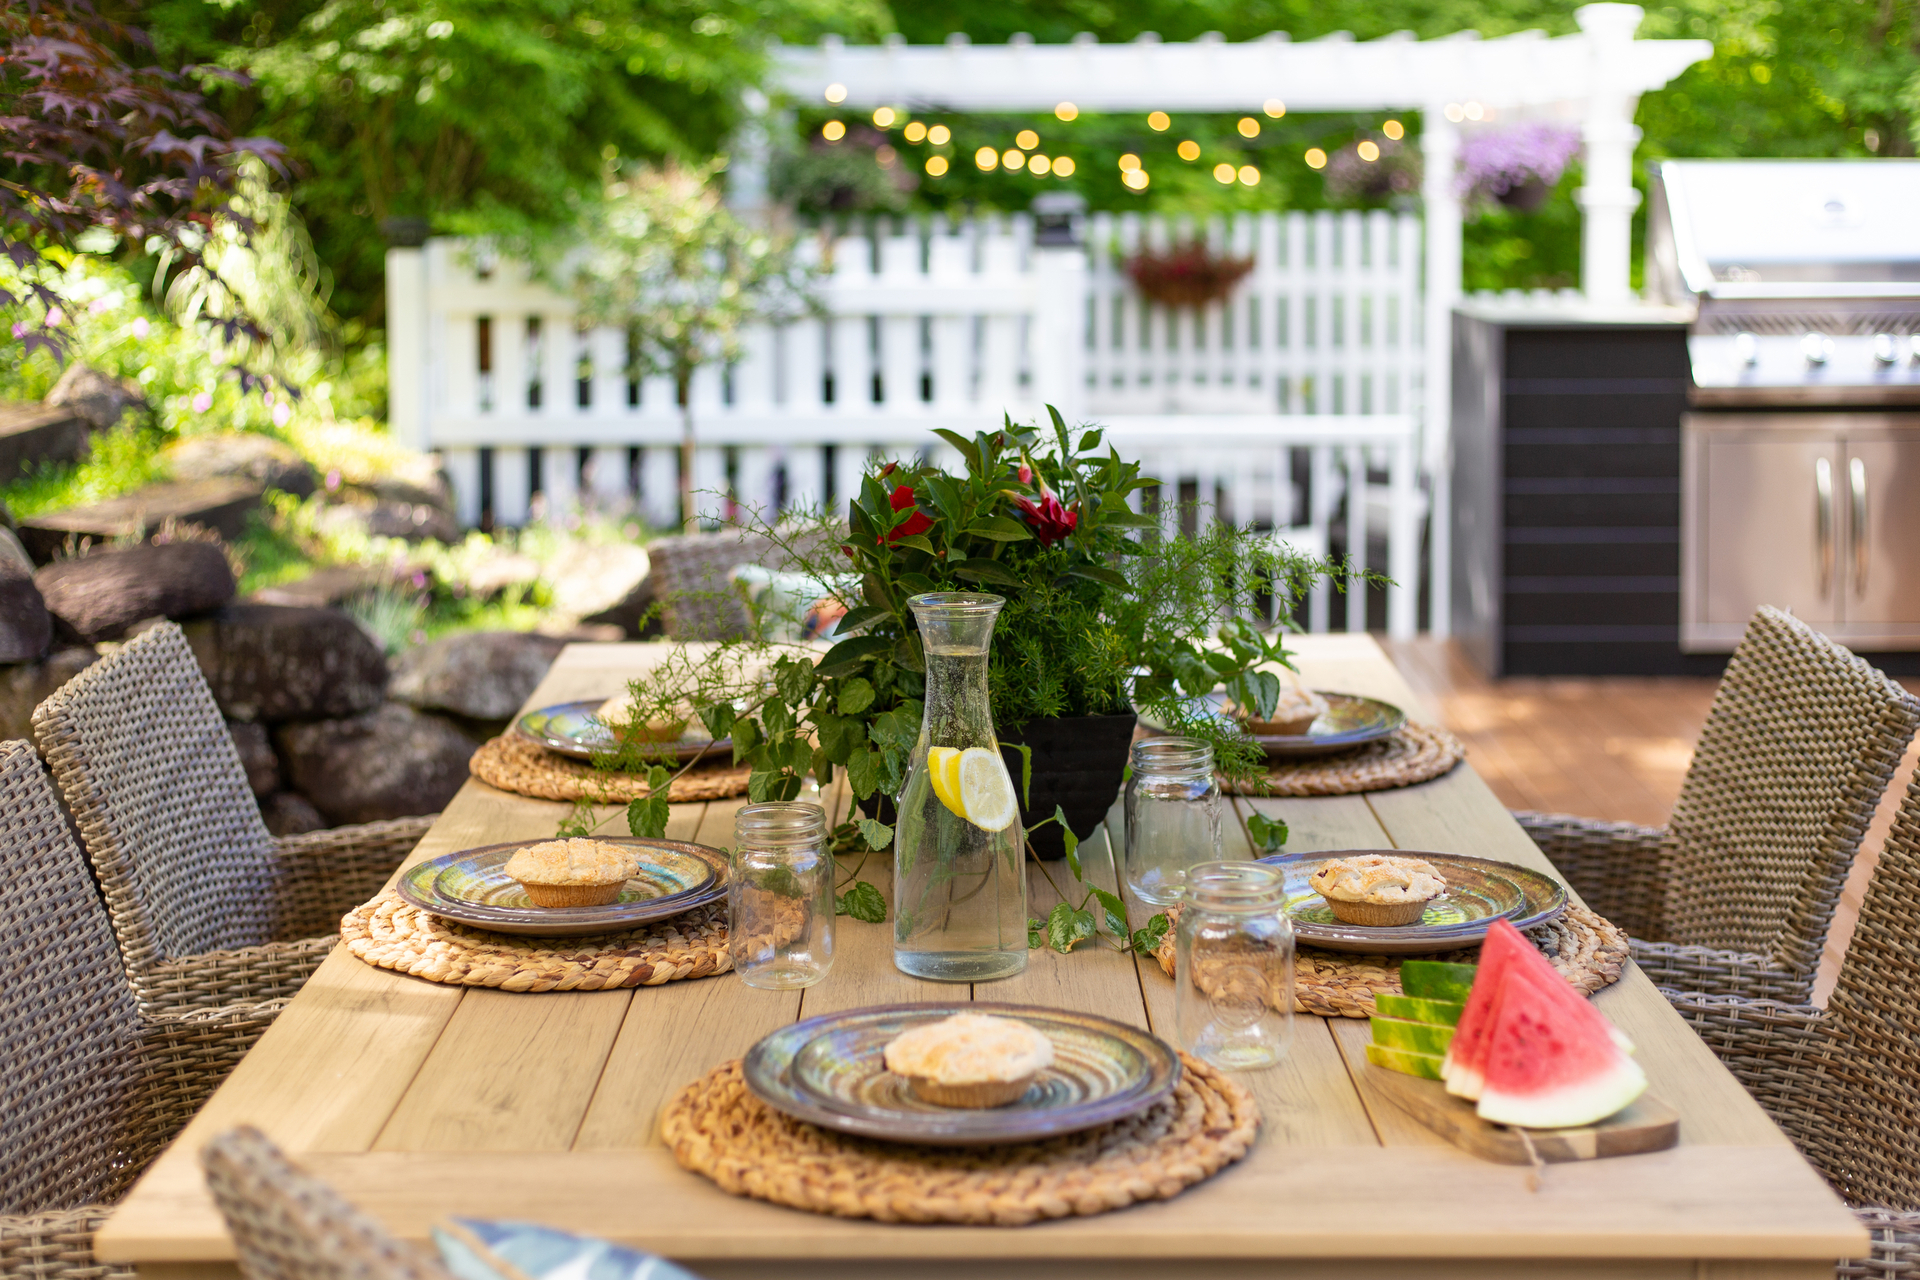 Our Backyard: Outdoor Living with Canadian TIre - Bonjour Bliss Roxanne West